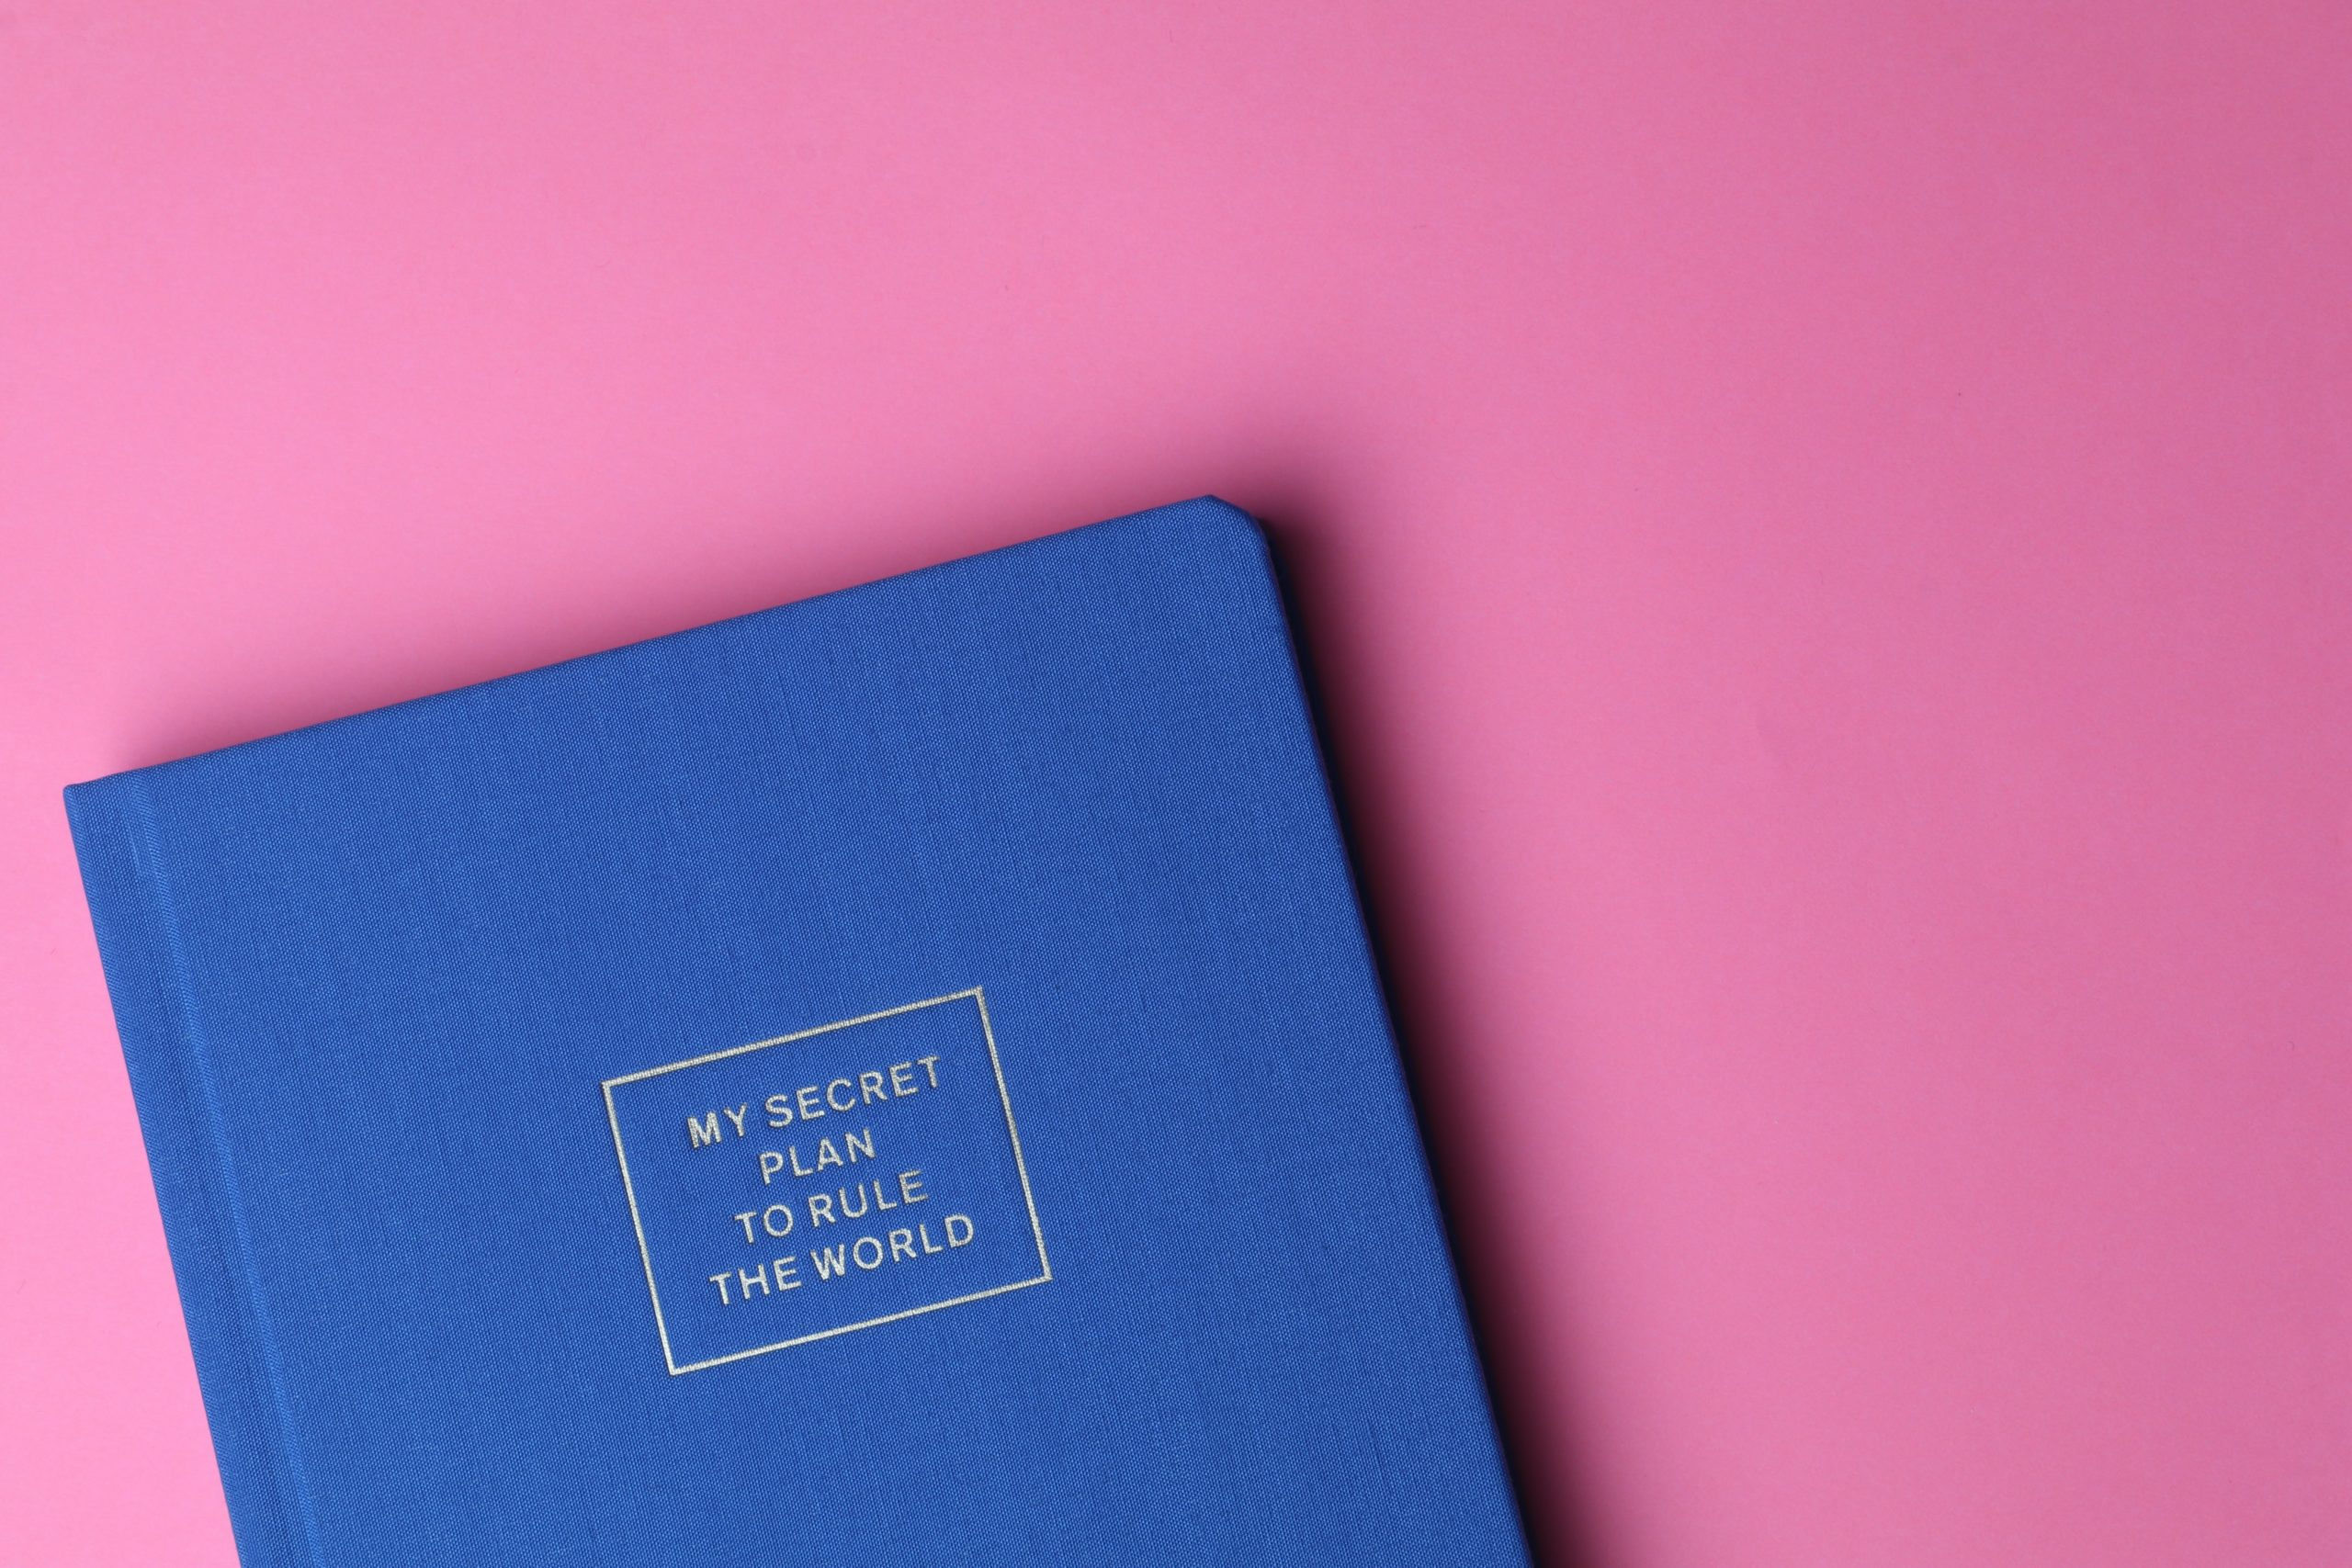 A book with a blue cover on a pink background learning about social media algorithms